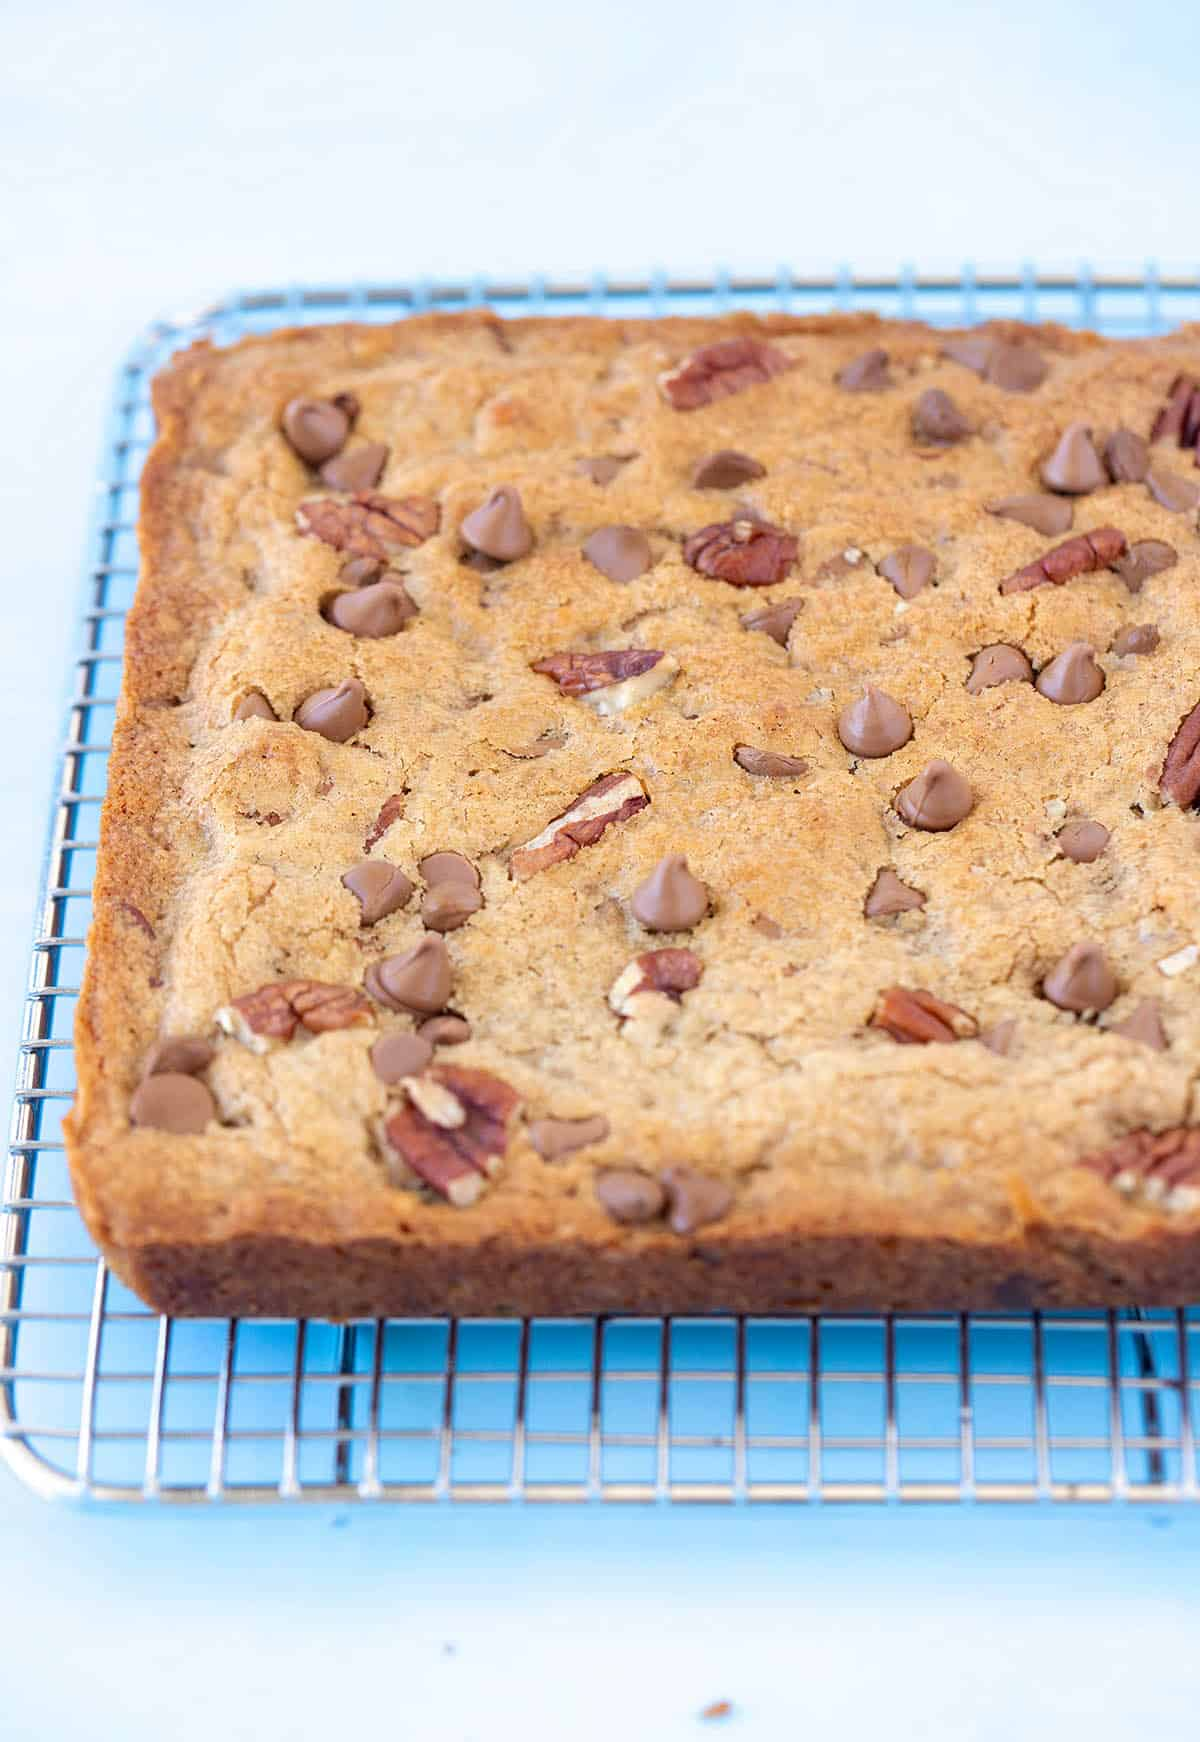 A Pecan Chocolate Chip Blondie fresh from the oven sitting on a cooling rack